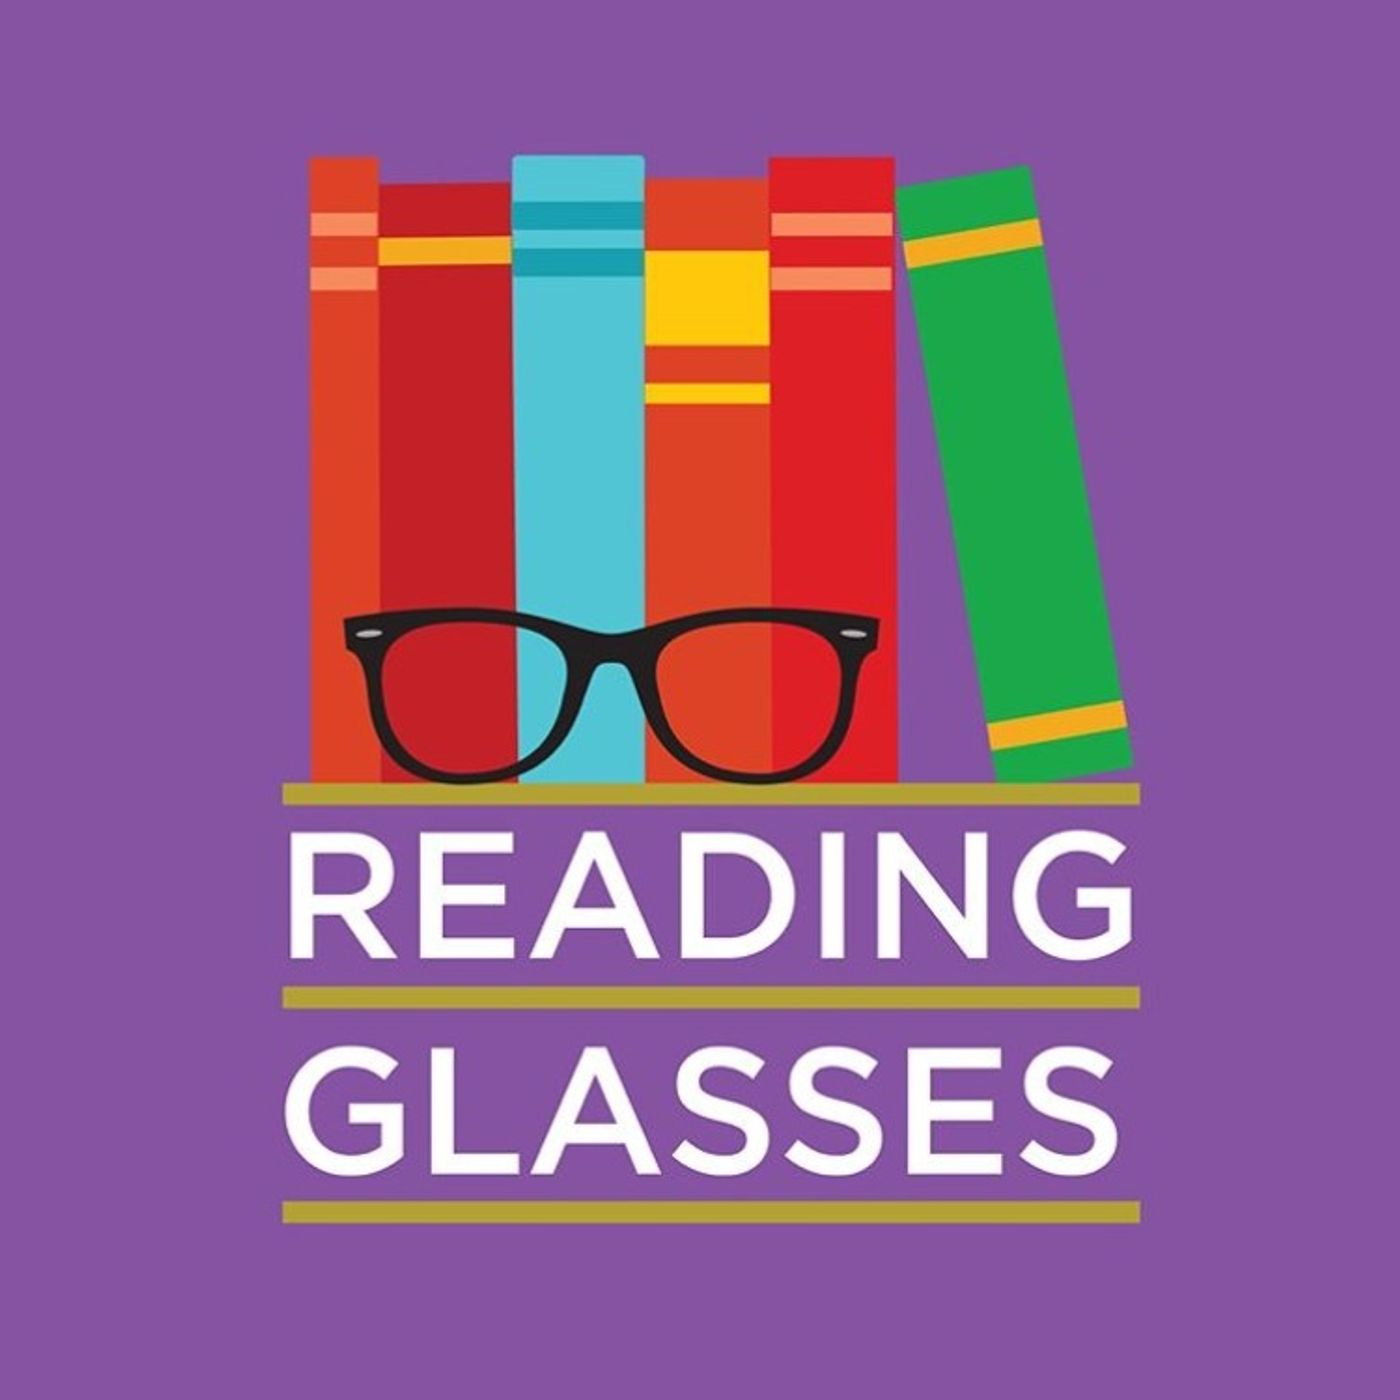 Ep 183 - 2020 Reading Glasses Challenge and 2021 Announcement!